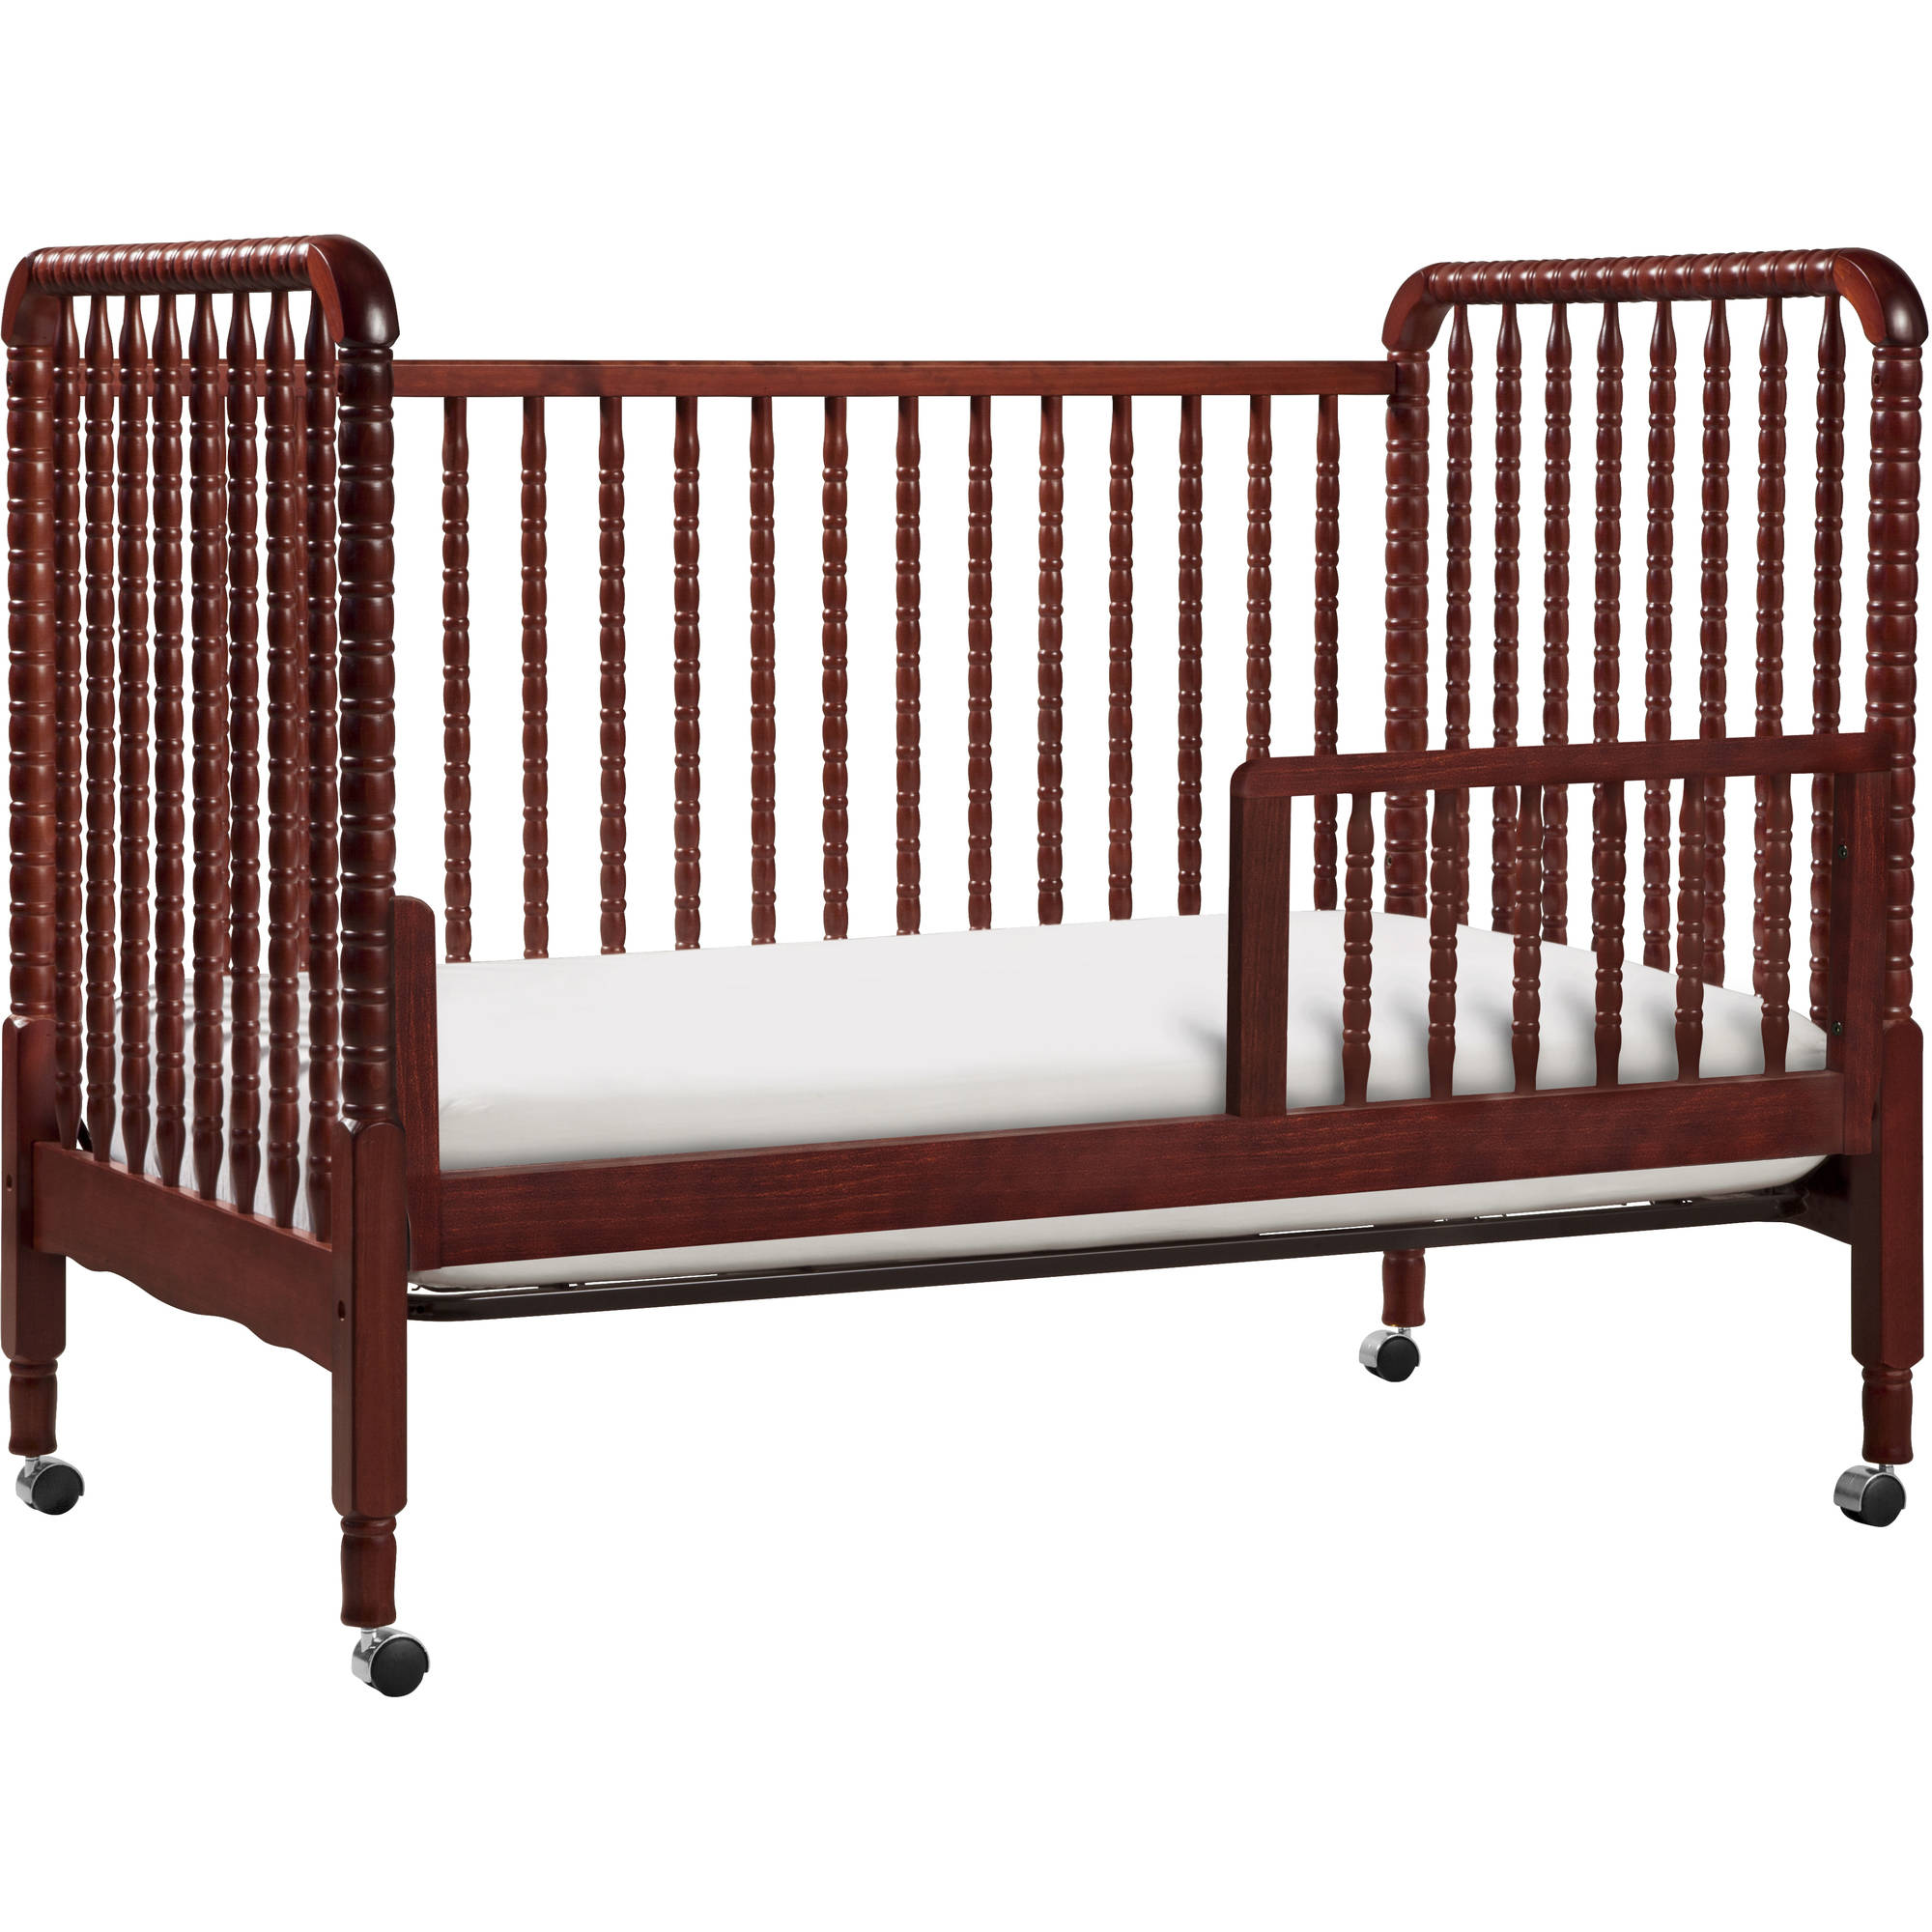 Convertible Crib Classics 4 Westwood Designs Harper Cottage Crib With Detailed End Panel